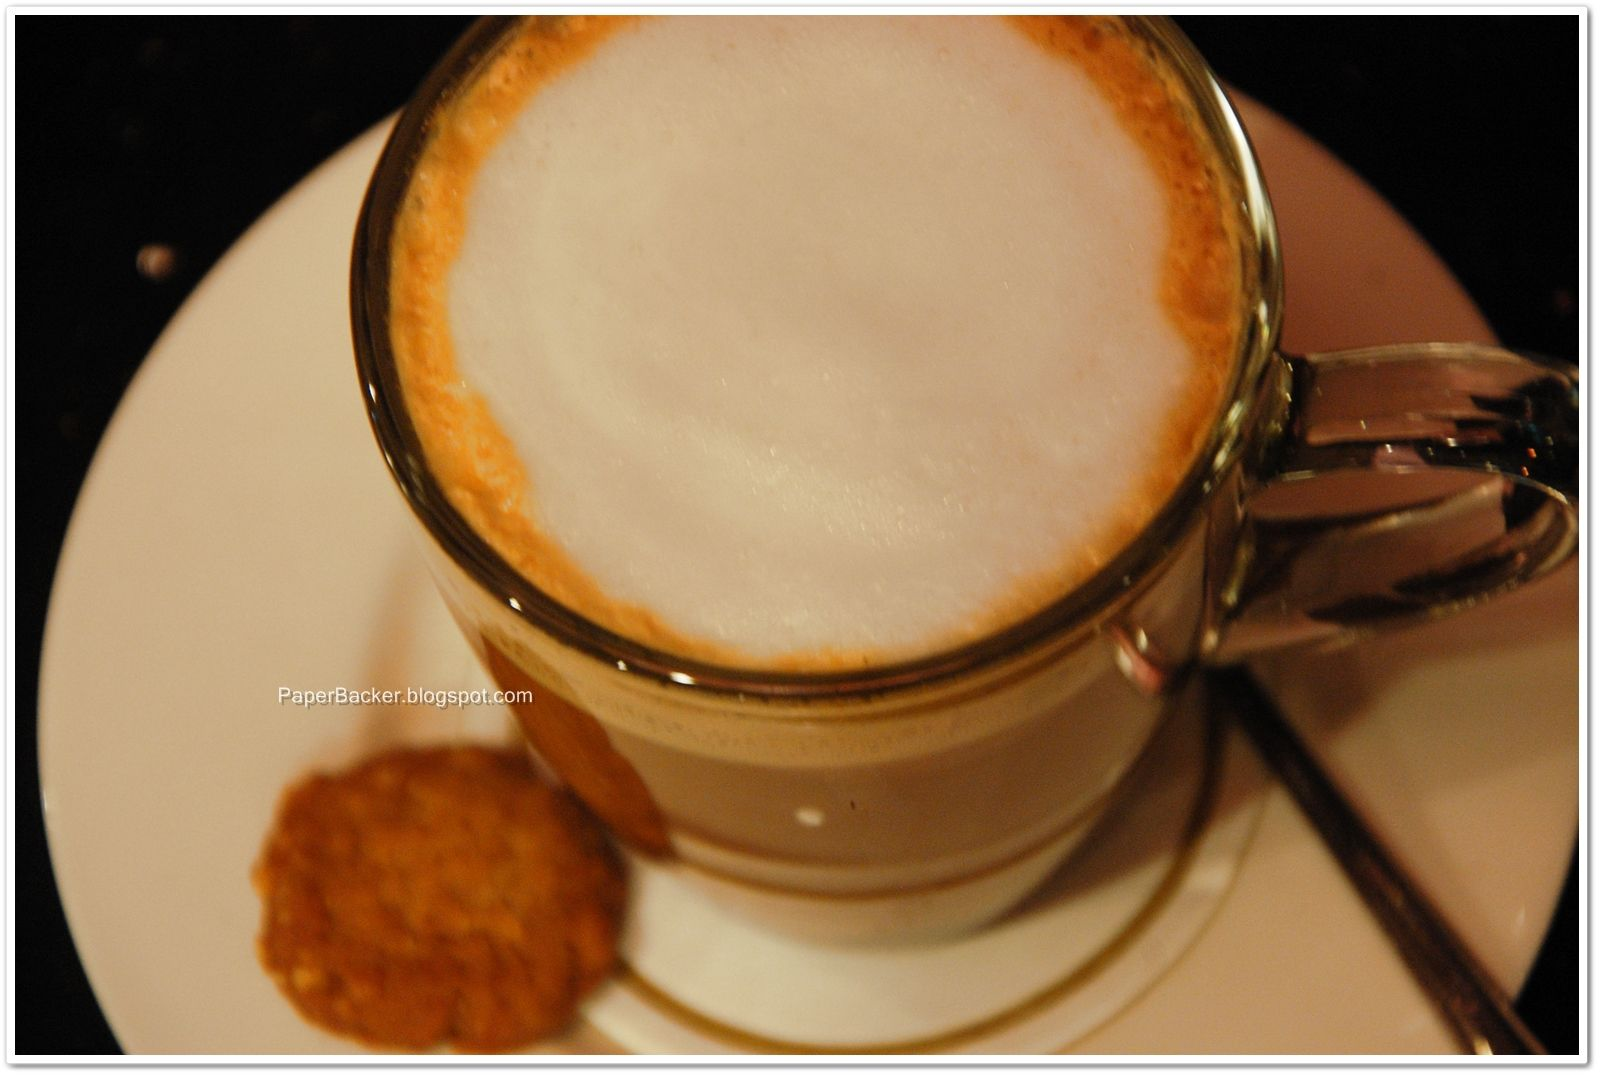 one of the best hot choco i've ever tasted